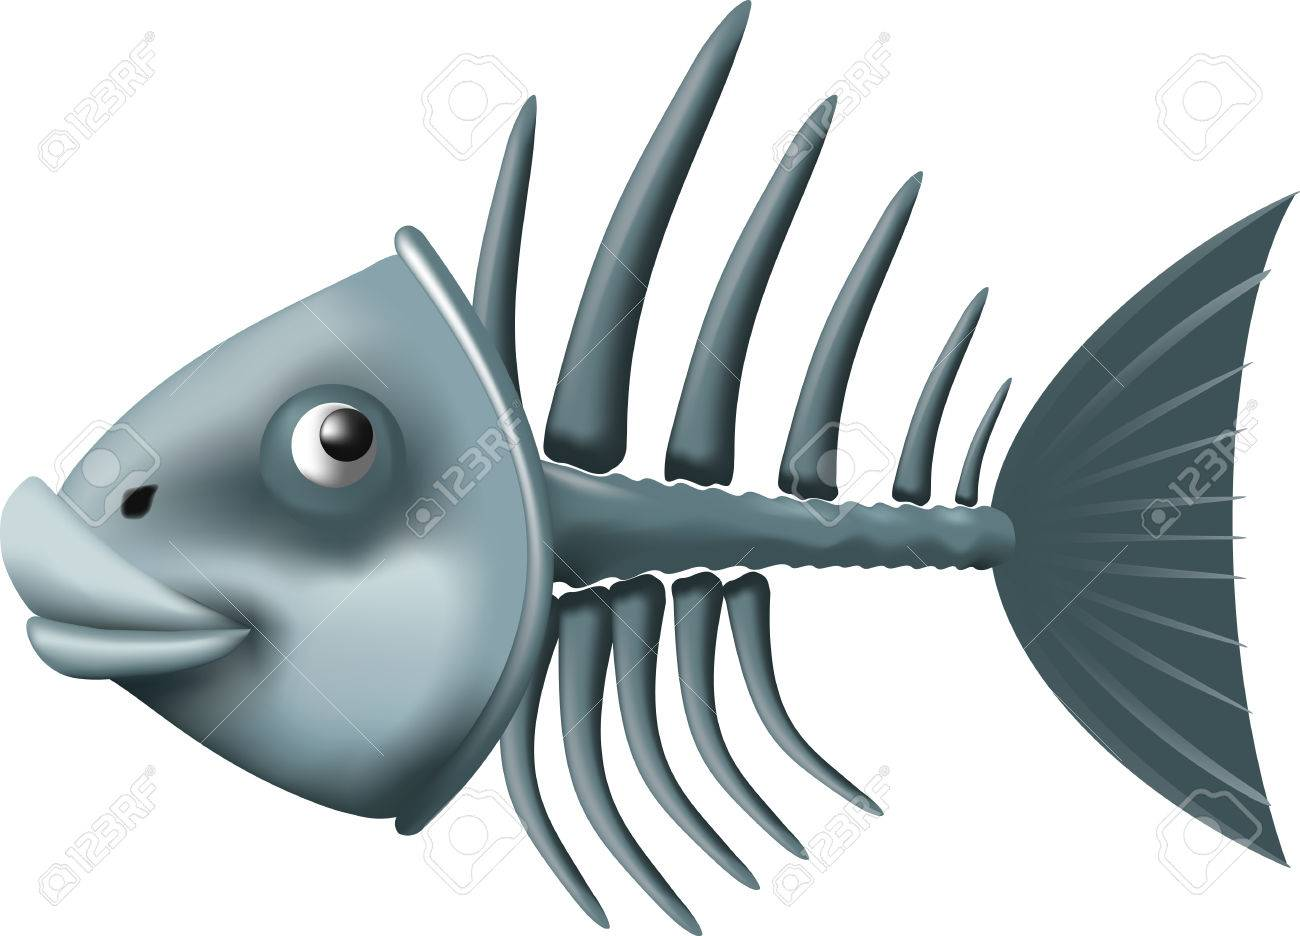 Conceptual fish skeleton isolated on white background Stock Vector - 23111681